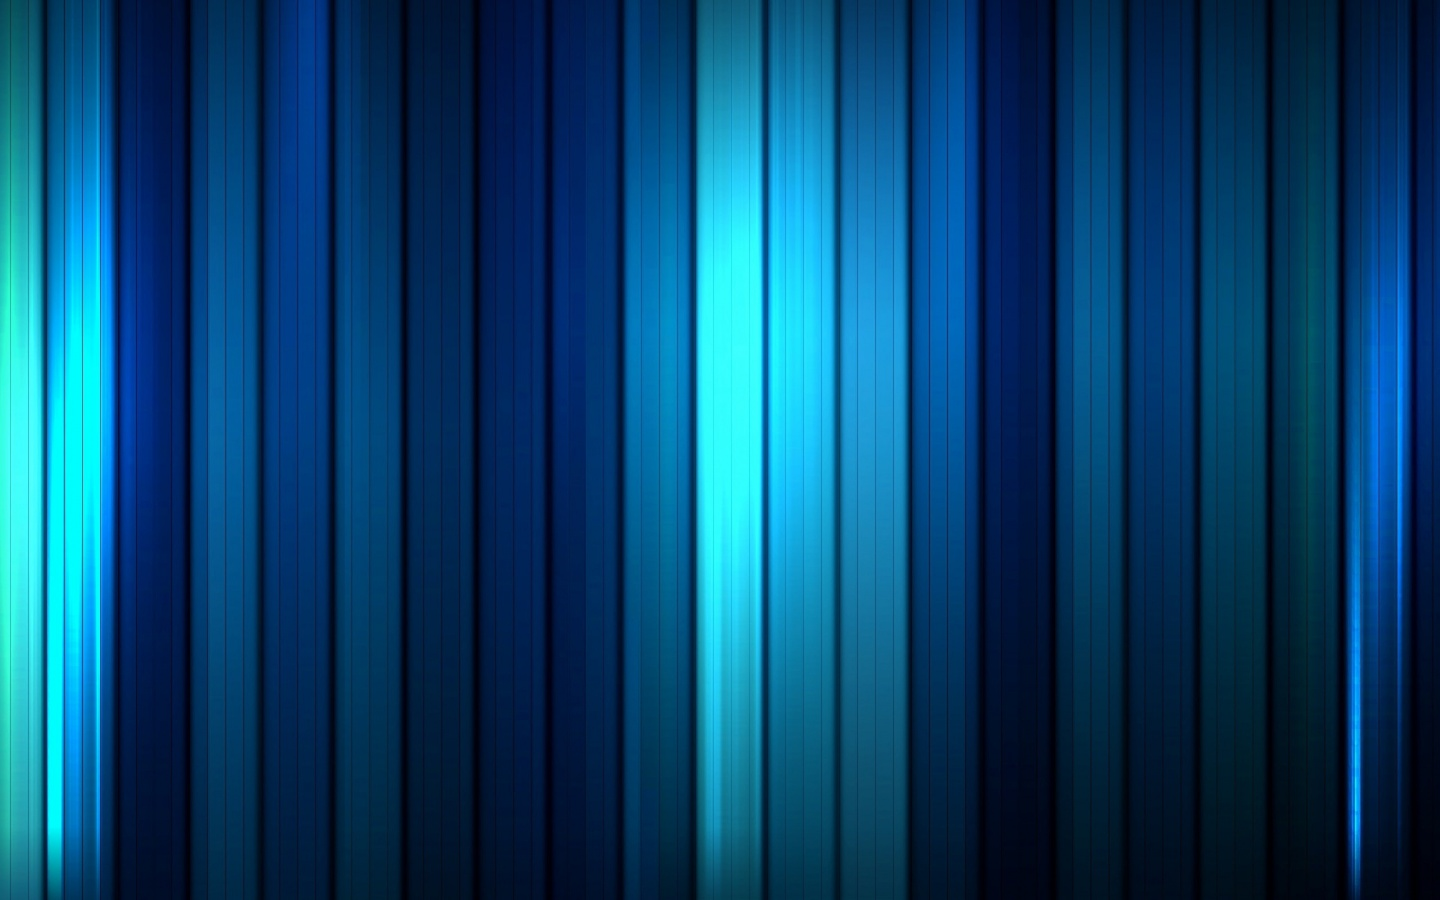 1440x900 Vertical blue stripes desktop Pc and Mac wallpaper